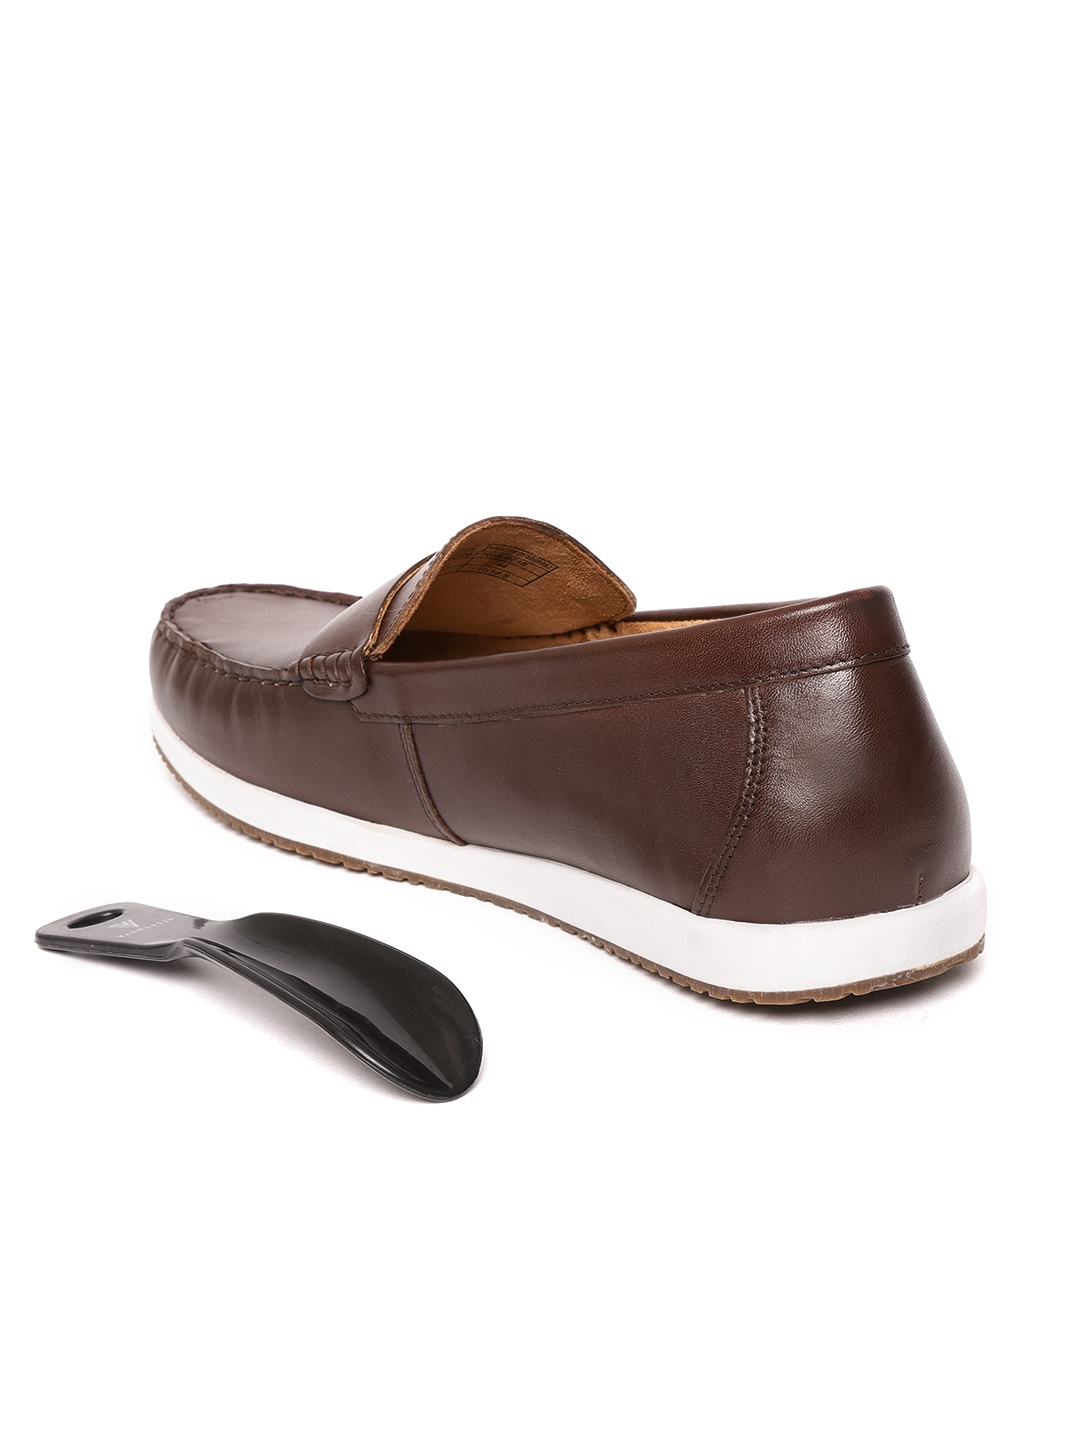 a5fb86b6caec19 Buy Van Heusen Men Brown Leather Loafers - Casual Shoes for Men ...